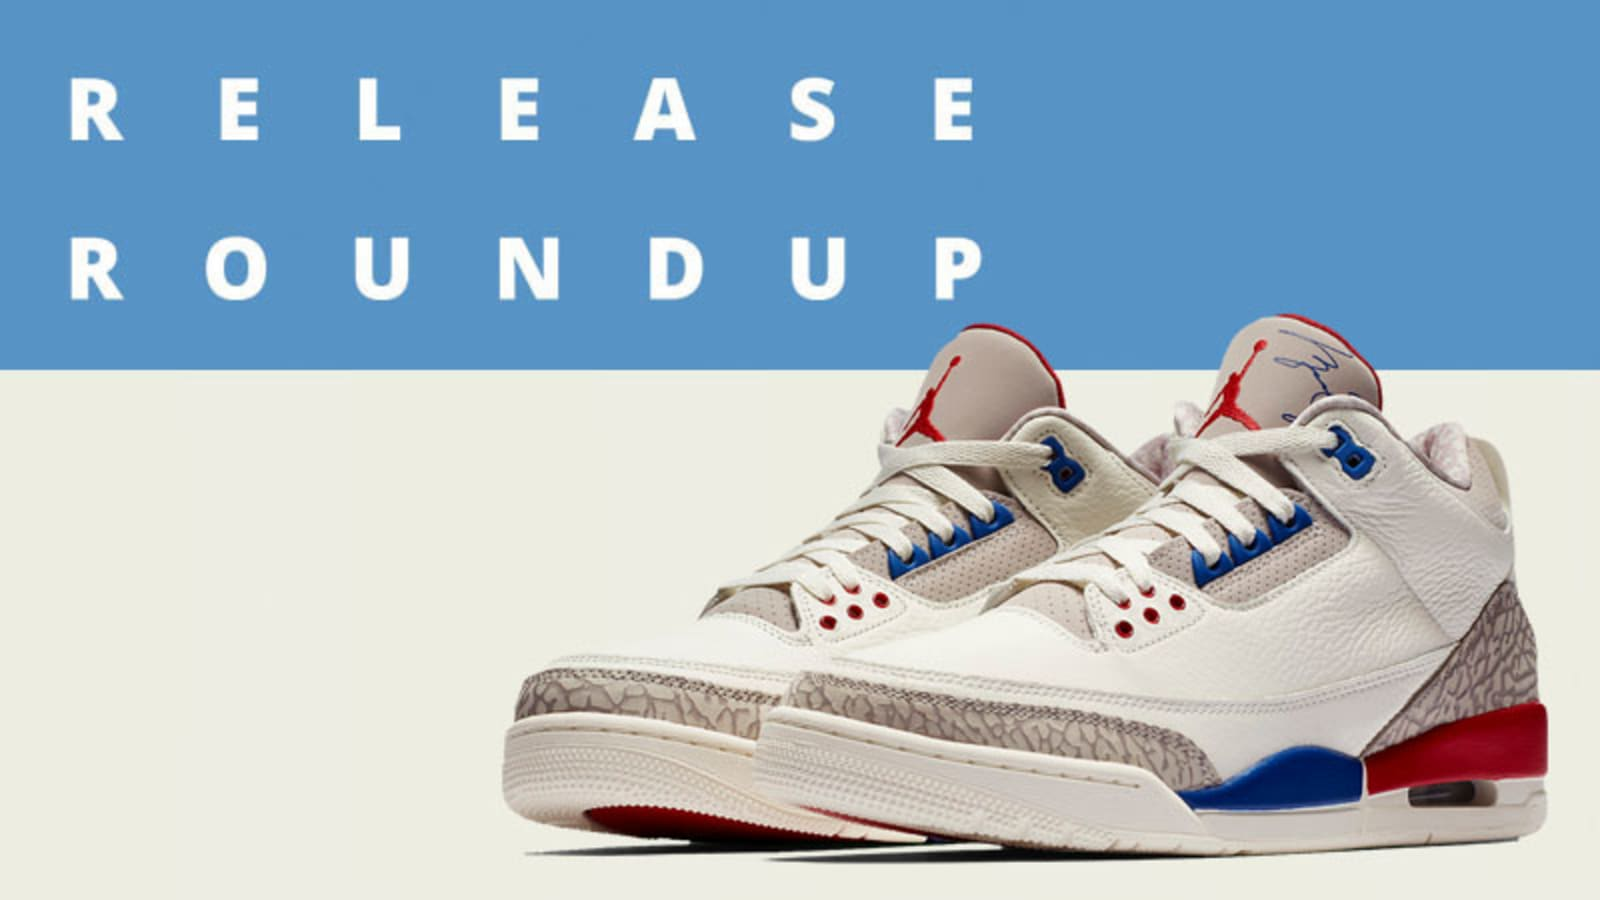 705225554 This week s Release Roundup kicks things off with collaborations from  Reebok with the